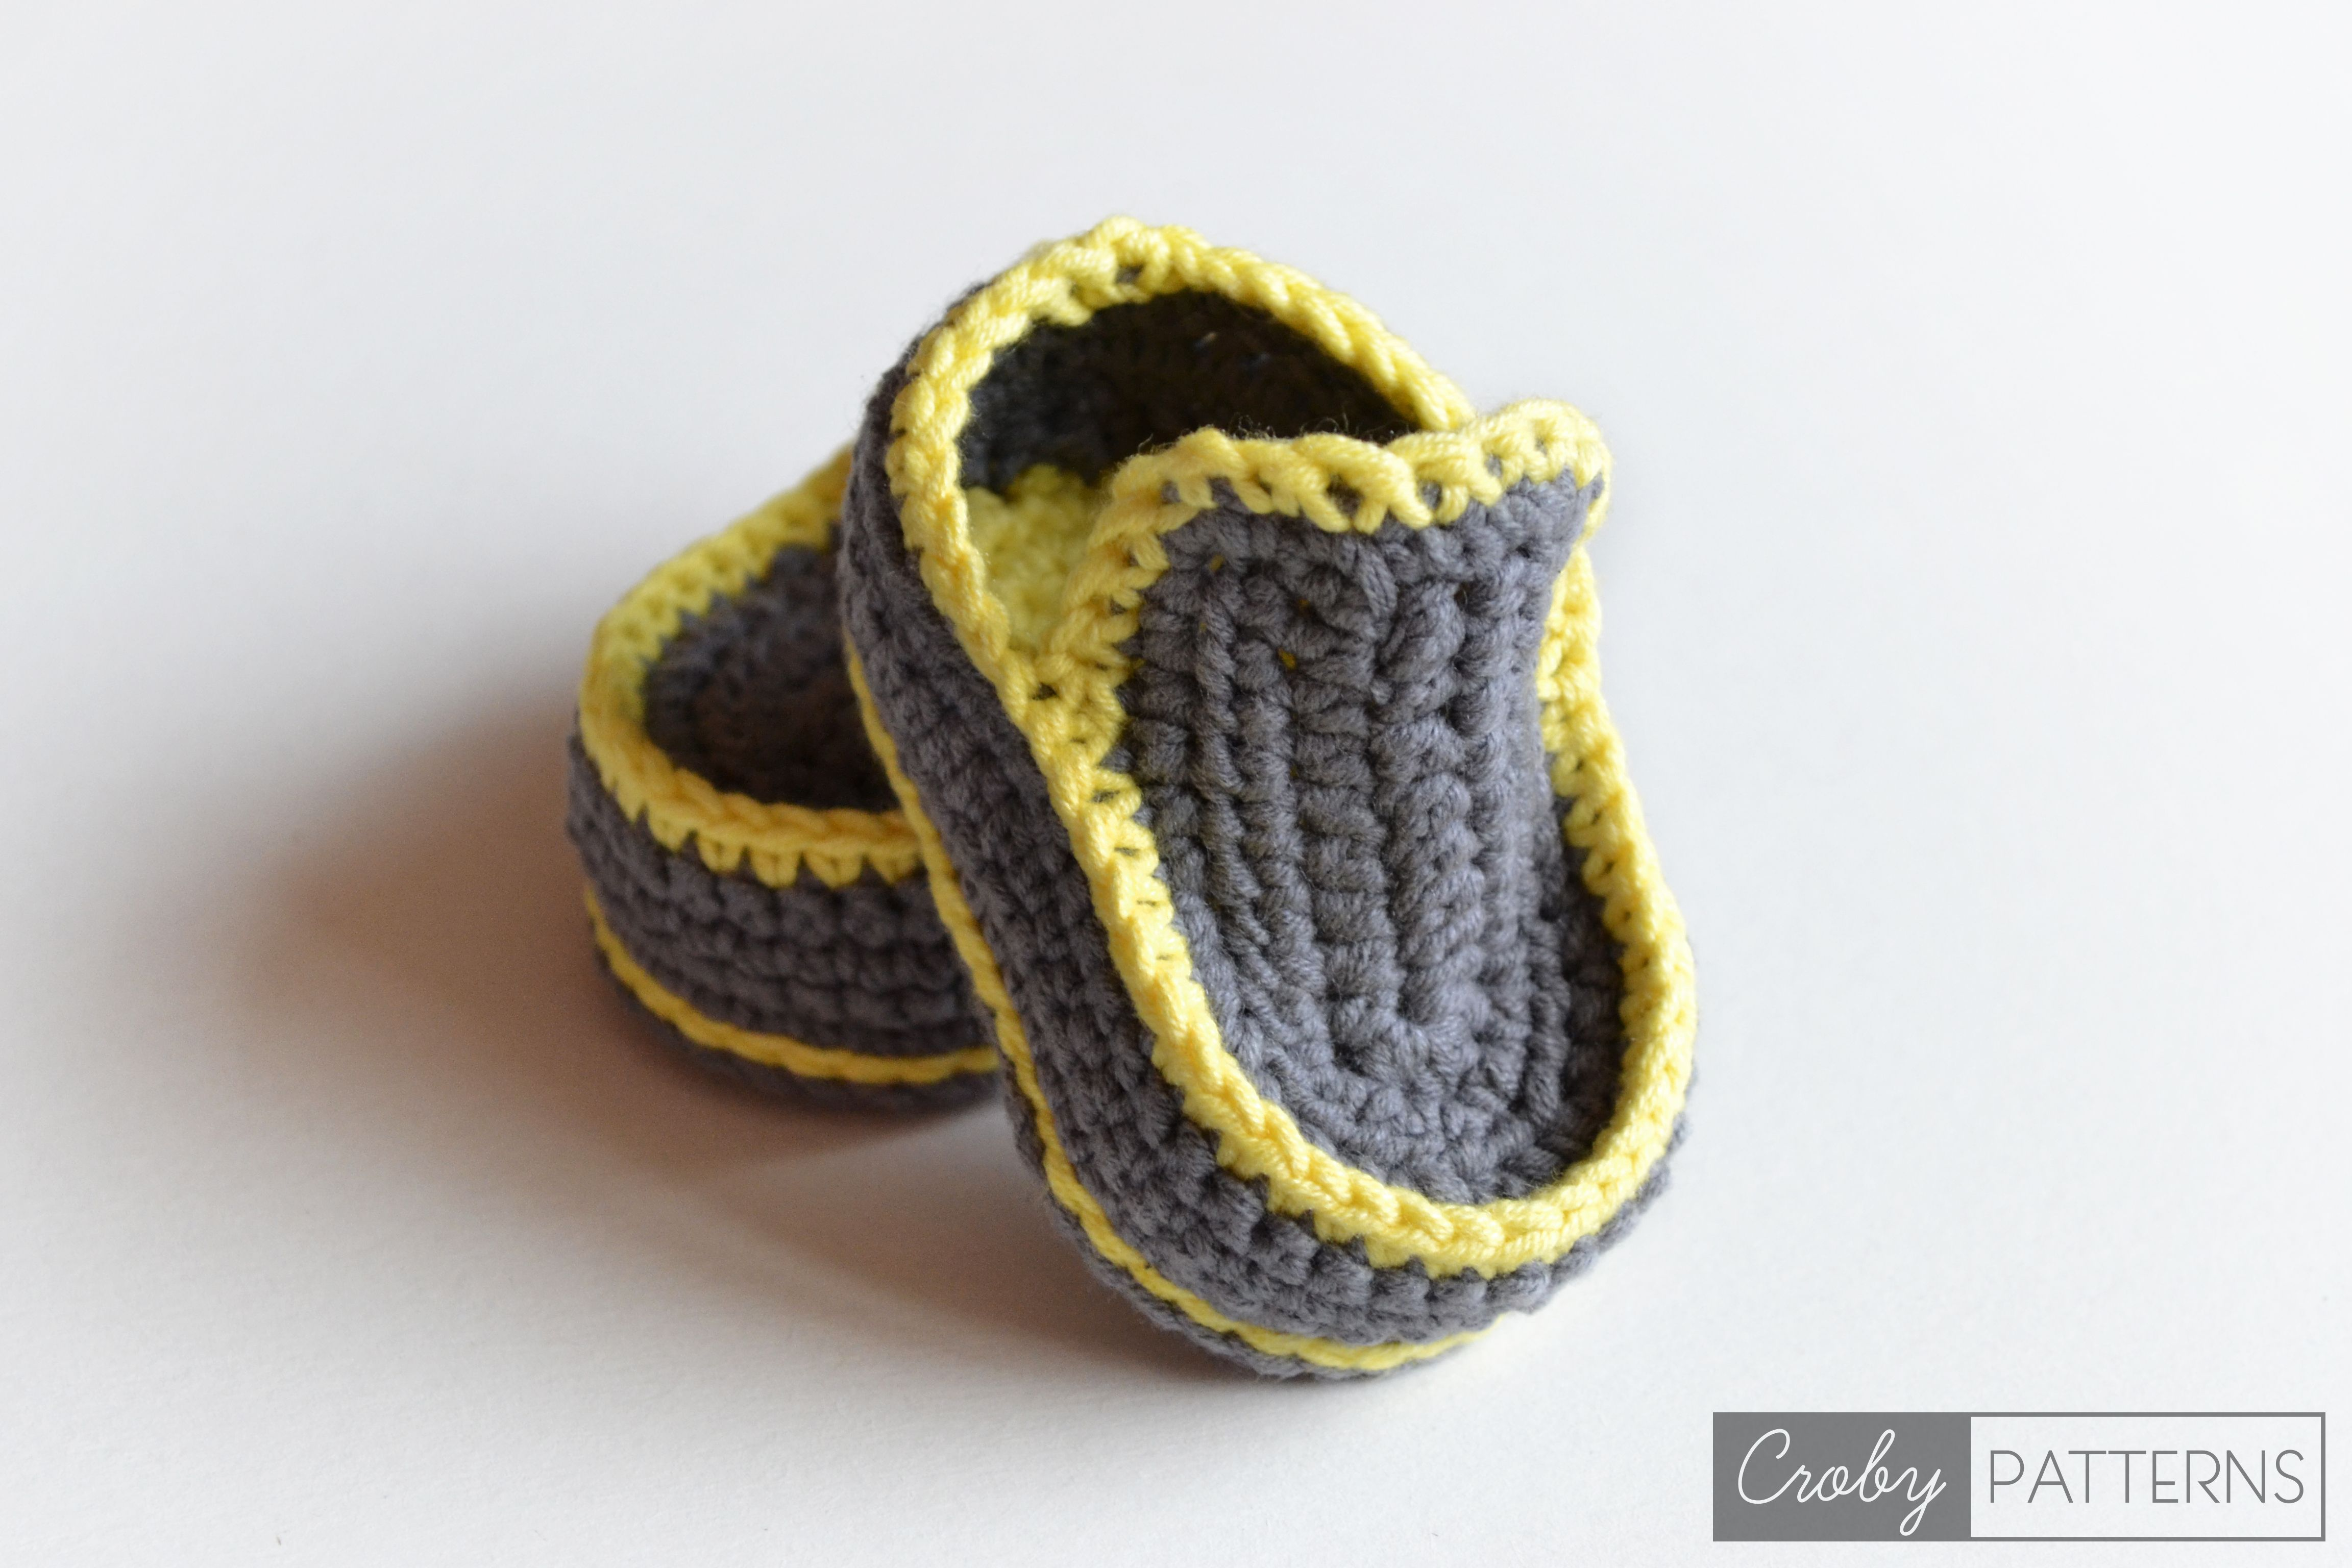 Great crochet patterntutorial baby booties pinterest great crochet patterntutorial bankloansurffo Choice Image